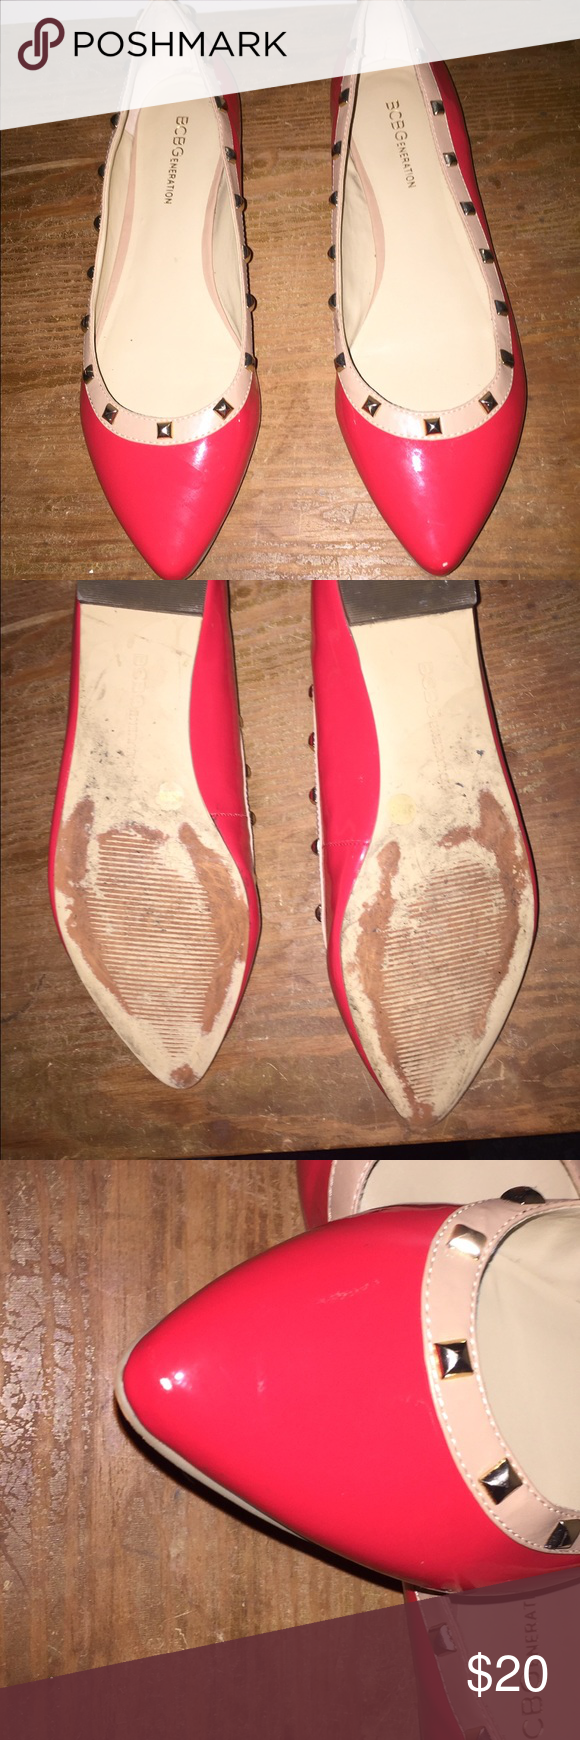 ❗️ final price❗️Coral stud flats Summery and cute coral studded flats.. Bcbg brand... Please note that there are some tiny scuffs (see pic 3 and 4).. Very comfy and cute flats. BCBGeneration Shoes Flats & Loafers